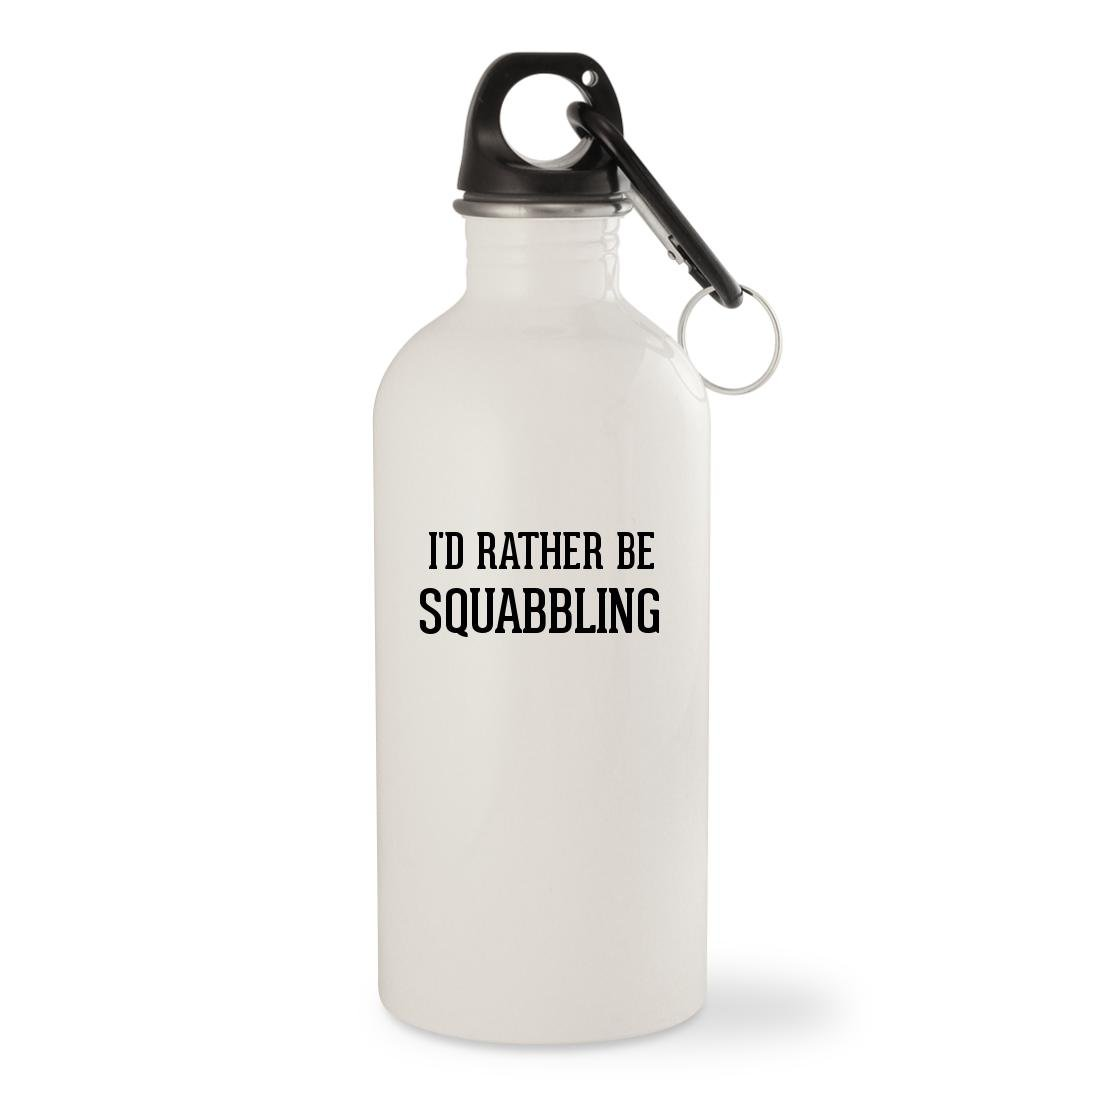 I'd Rather Be SQUABBLING - White 20oz Stainless Steel Water Bottle with Carabiner